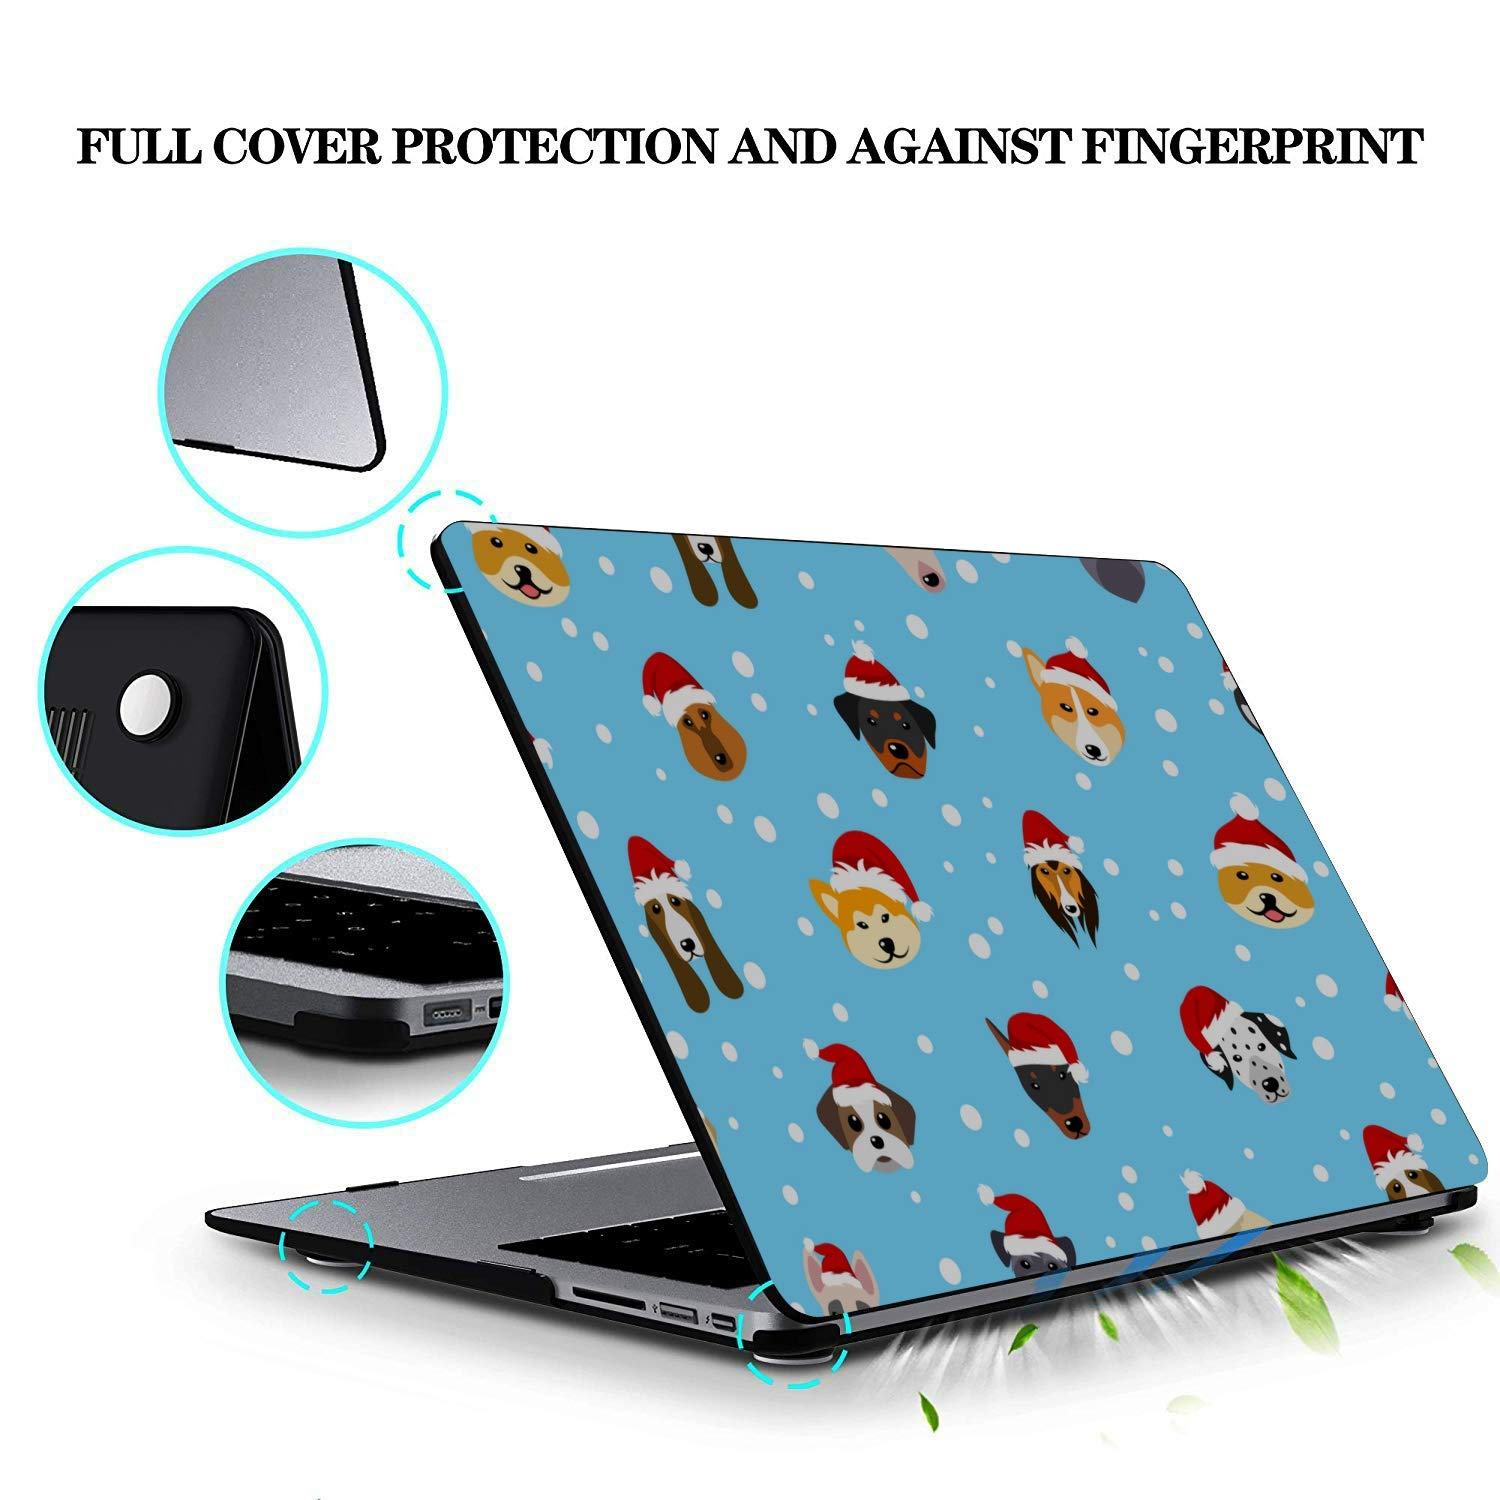 Mac Book Covers Cartoon Hat Dog Friendly Pet Plastic Hard Shell Compatible Mac Air 11 Pro 13 15 Mac Book Pro Accessories Protection for MacBook 2016-2019 Version